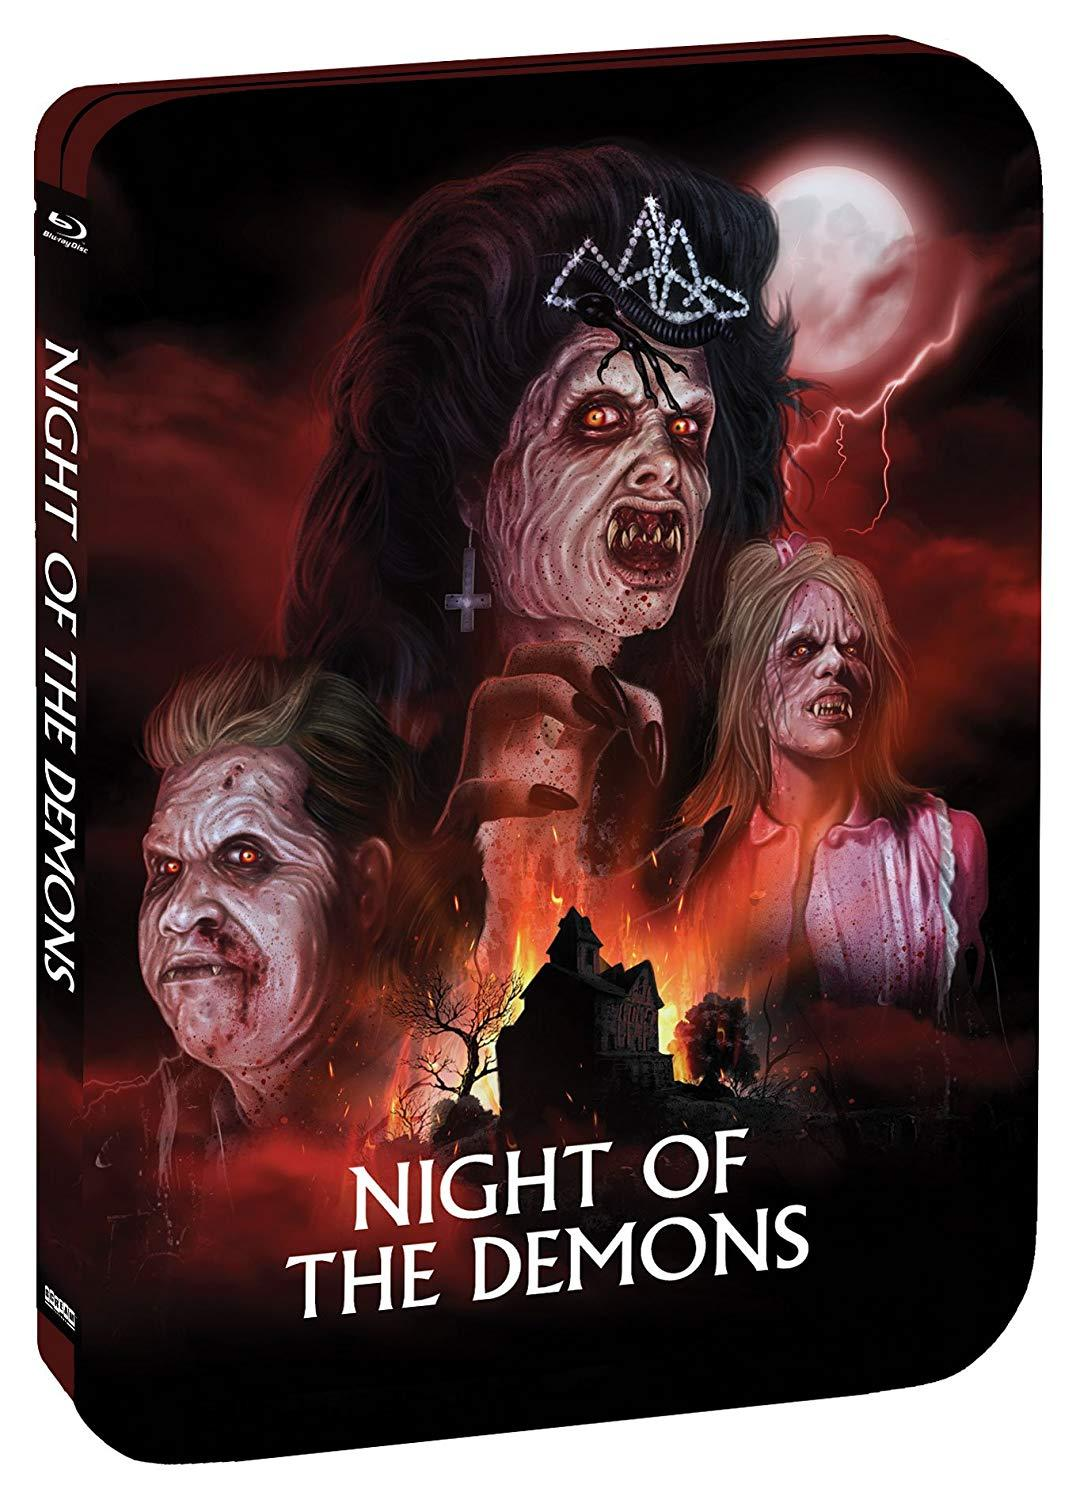 Amelia Kinkade Night Of The Demons contest: win a limited edition night of the demons (1988